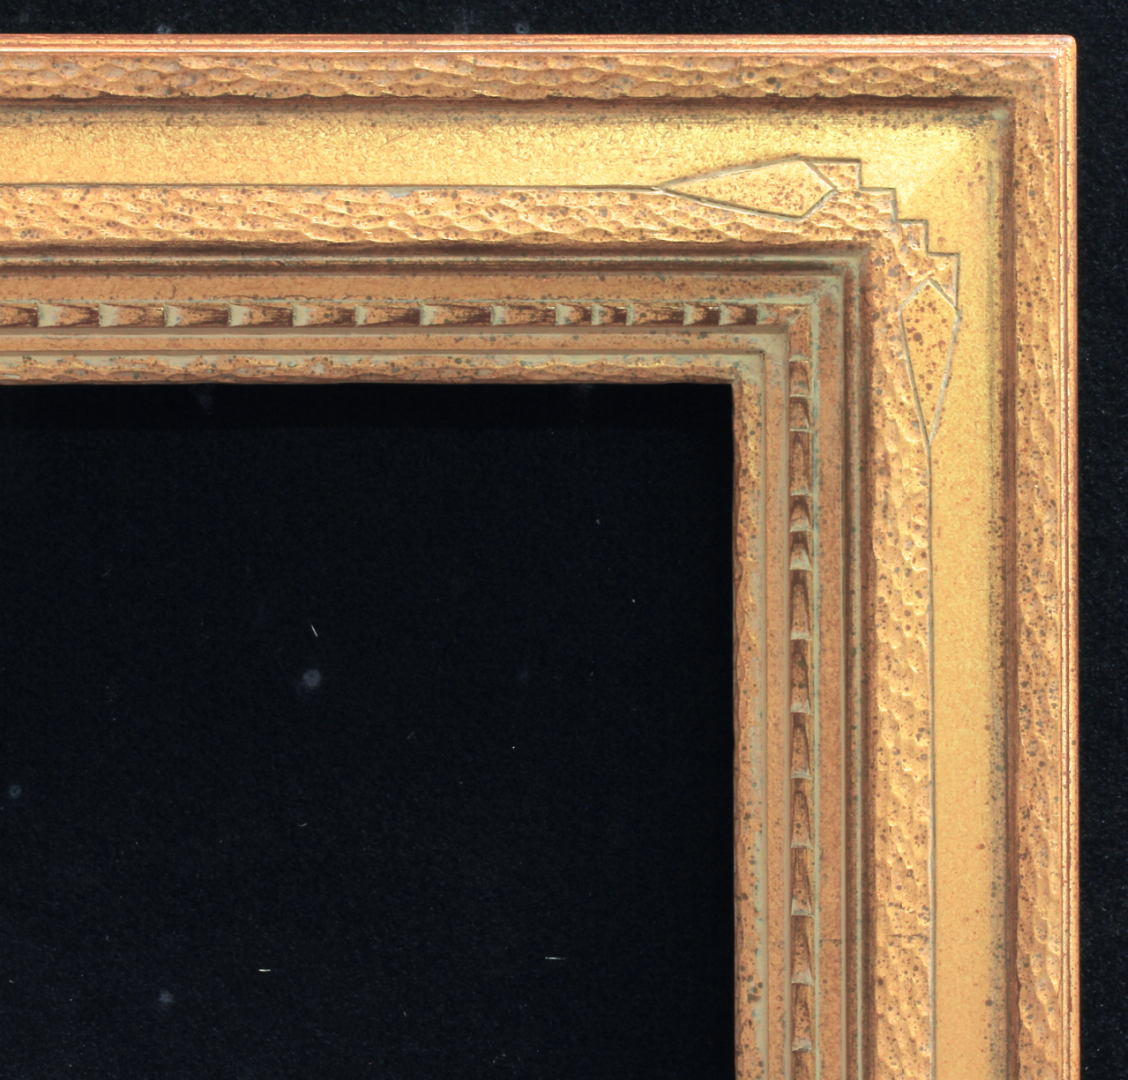 Custom Picture Framing | Collier Gallery Ltd.